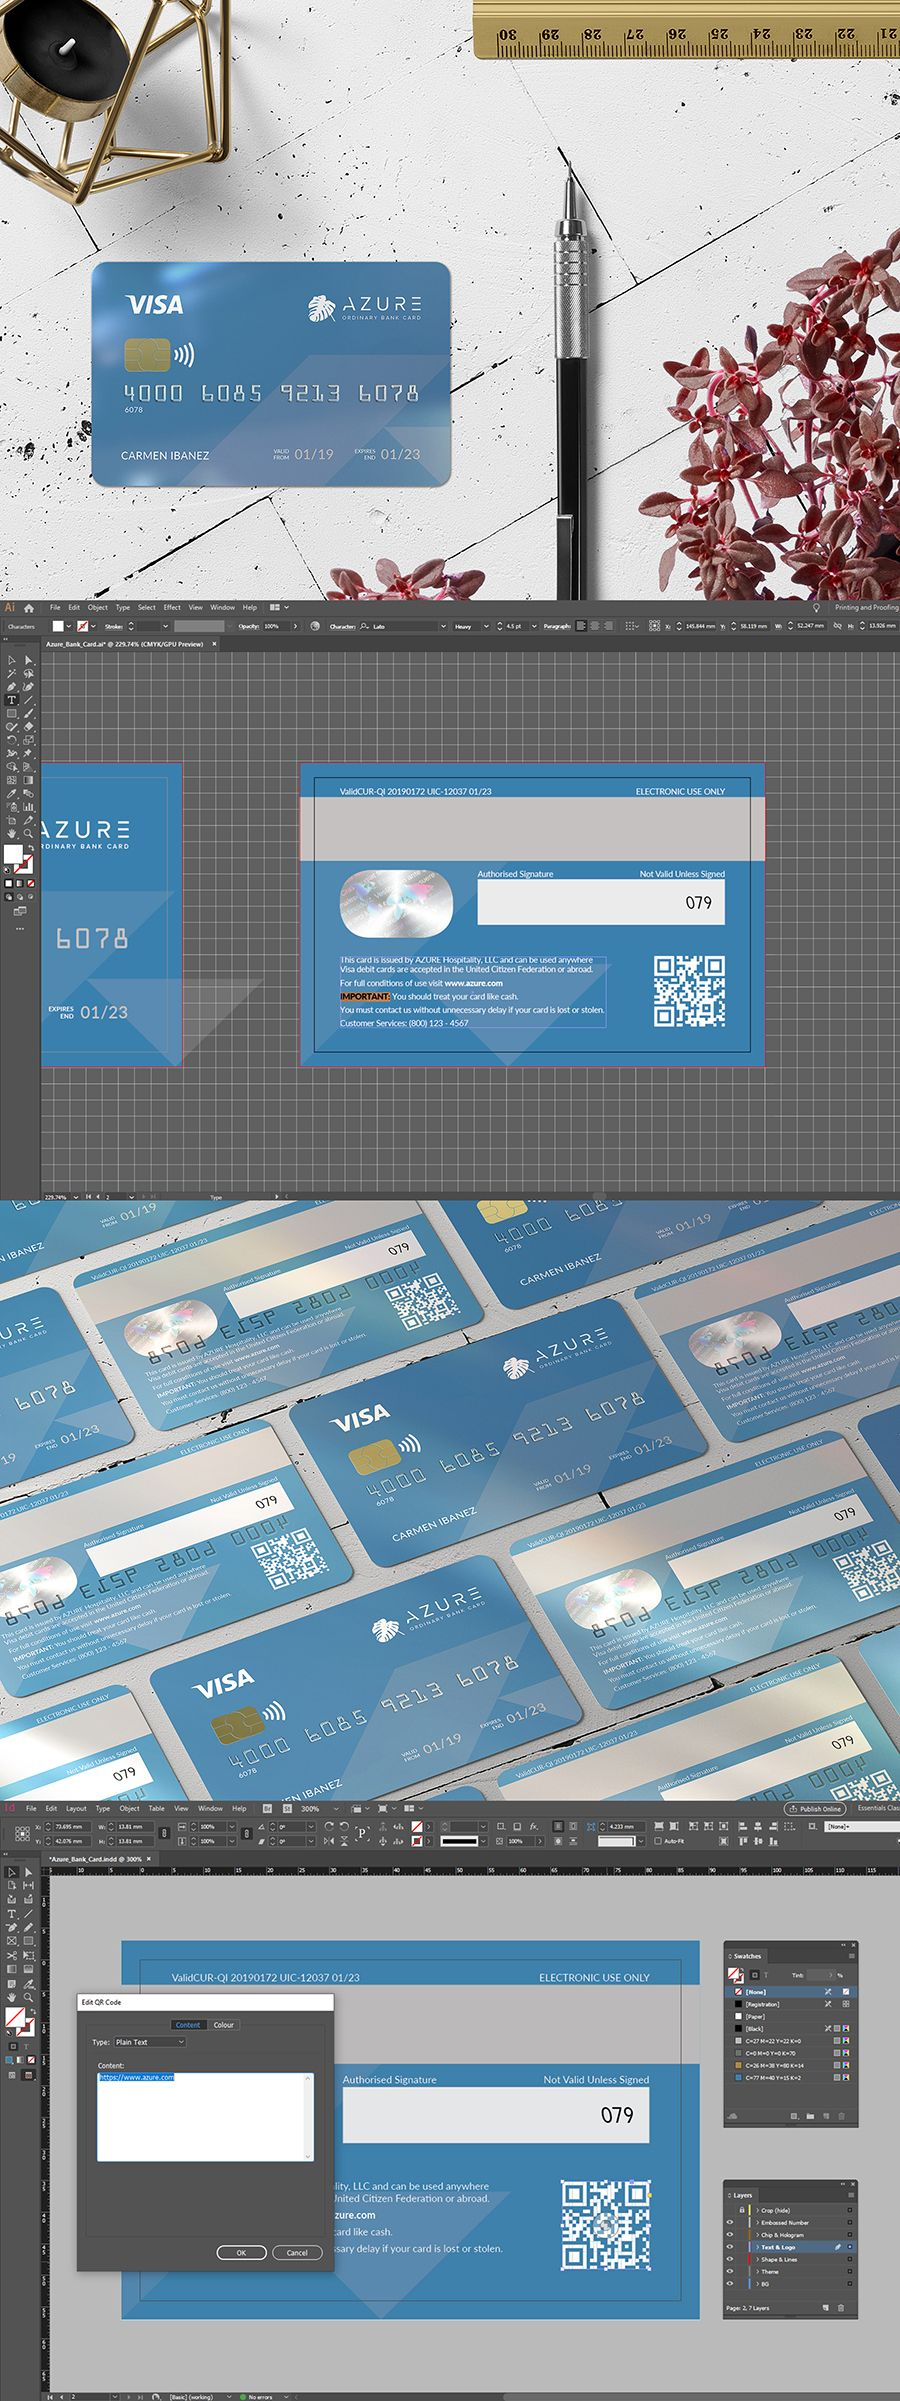 Azure bank card is an ordinary bank card template for